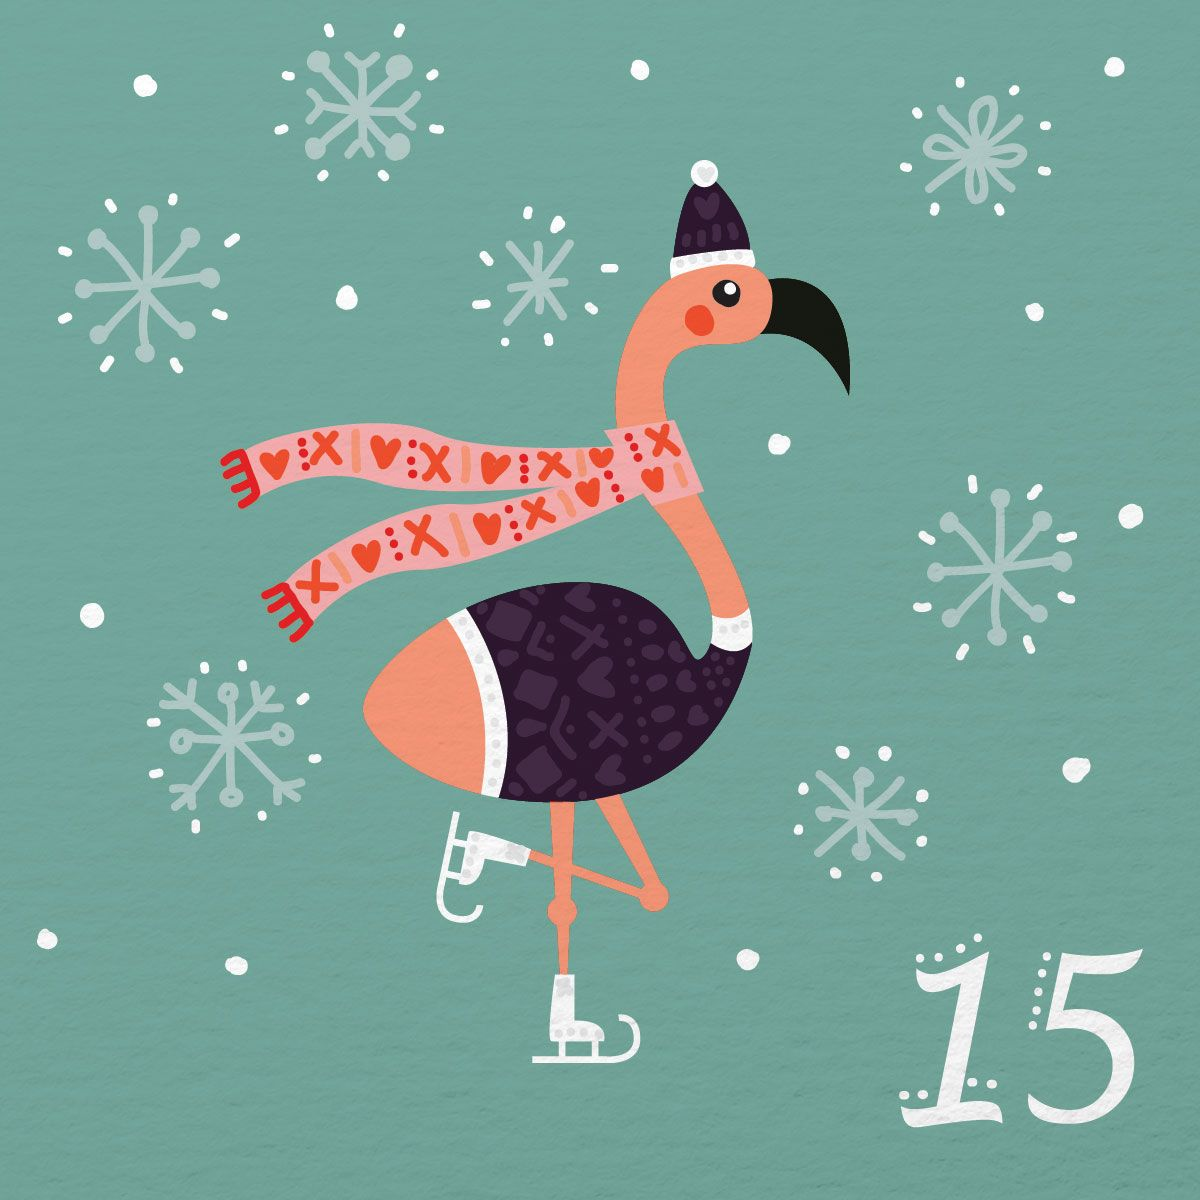 Just 10 more sleeps eeek are you all getting excited? What's behind door number 15, click on the link to find out https://buff.ly/35meLne #handmade #clayart #ChristmasCountdown #advent #AdventCalendar #giftideas #shoplocal #giftsforher #giftsforhim #shophandmade #shoponlinepic.twitter.com/Qs6PC65z0s